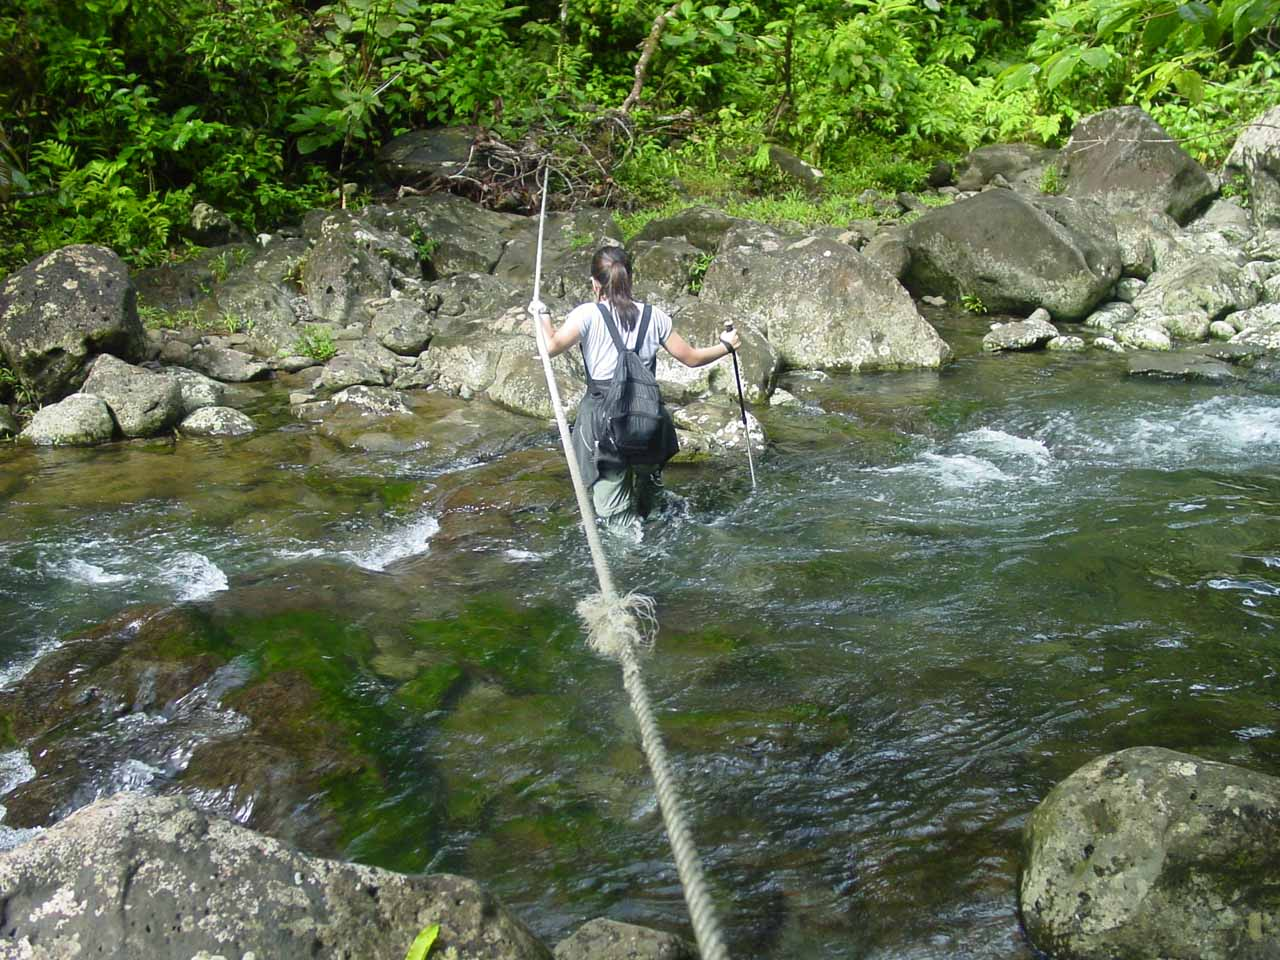 Julie crosses a particularly deep stream